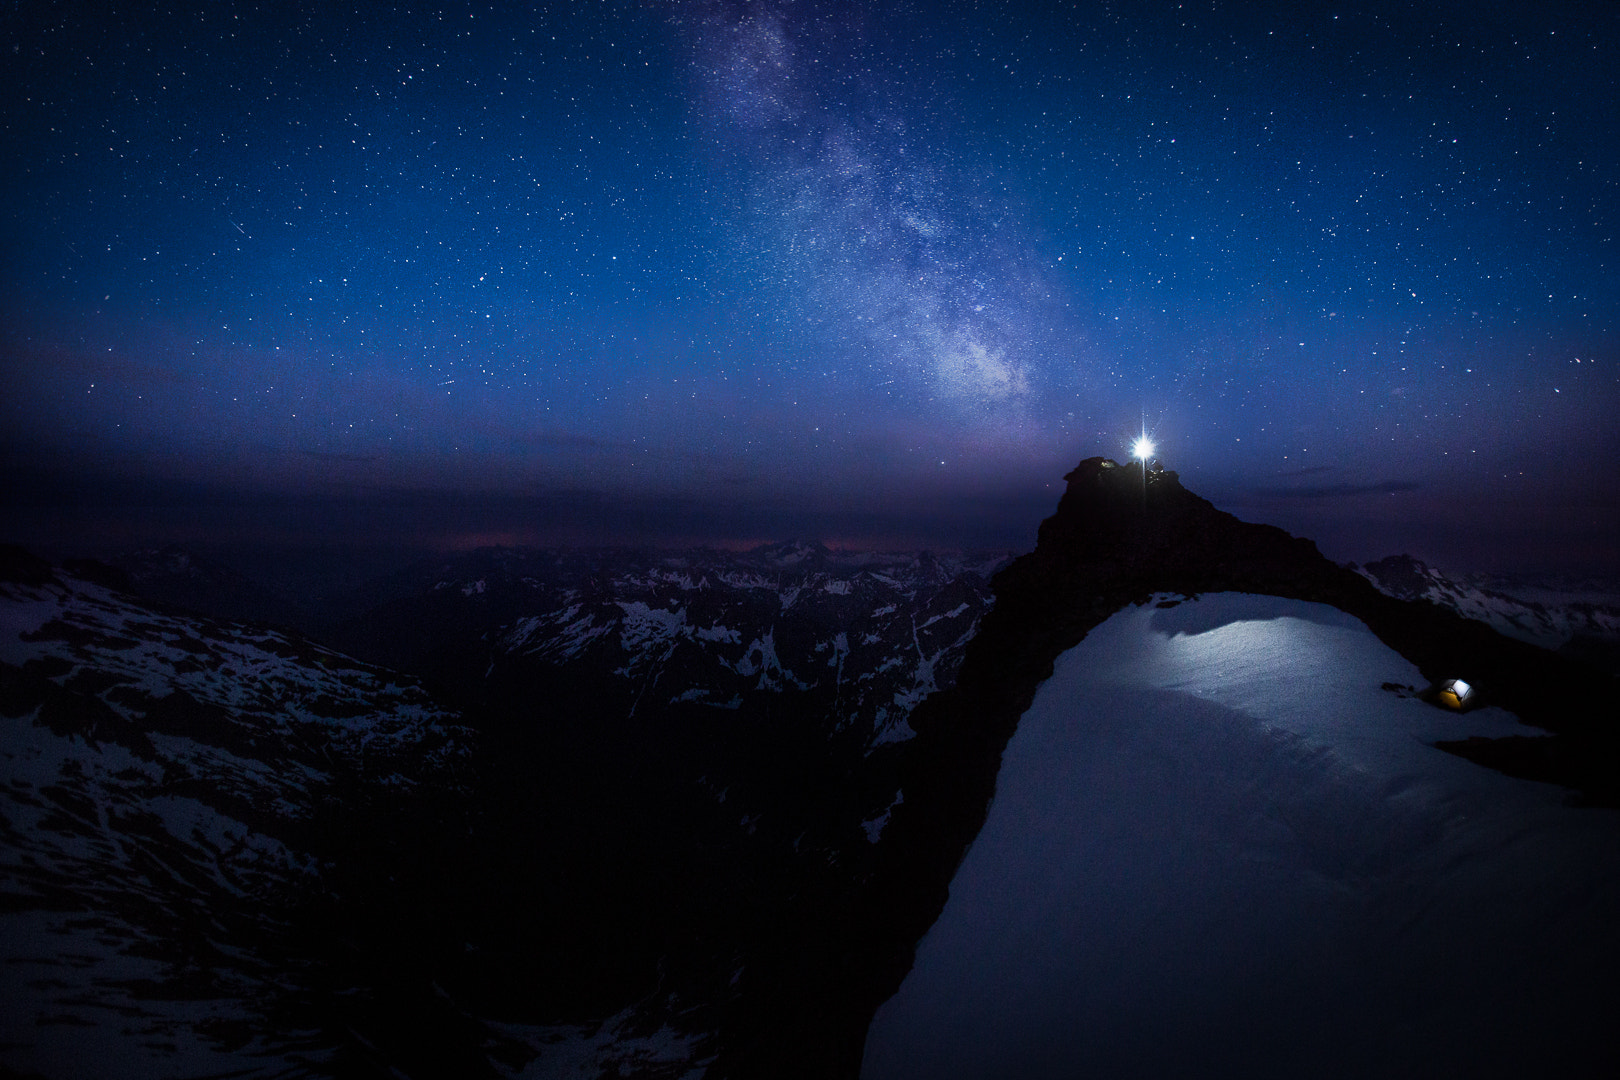 Photograph Midnight stroll on a quiet evening to the edge of a cliff by Luke Humphrey on 500px